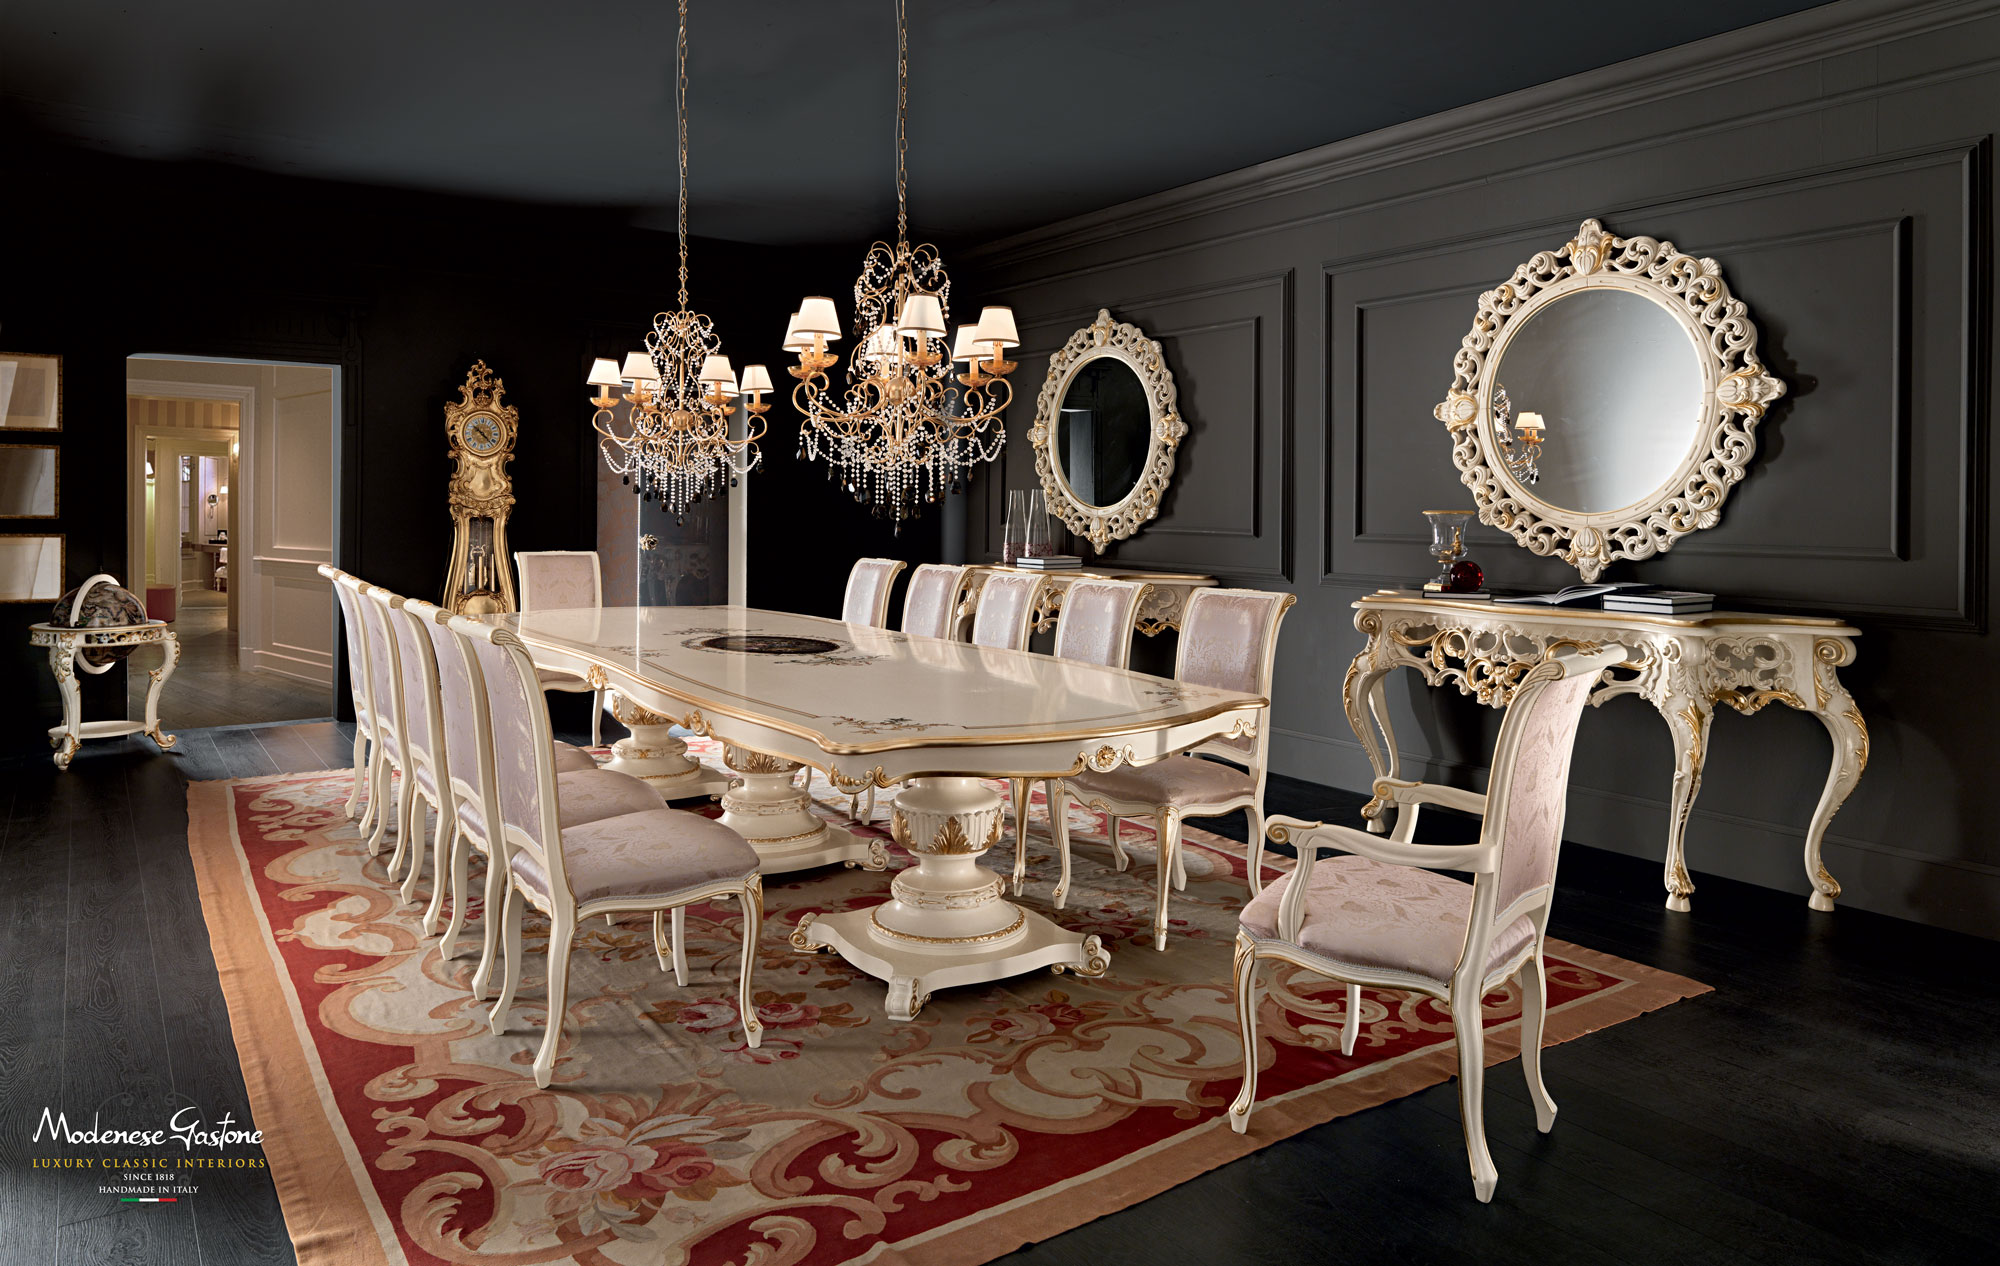 Dining-room-with-one-piece-painted-carved-table-Villa-Venezia-collection-Modenese-Gastone